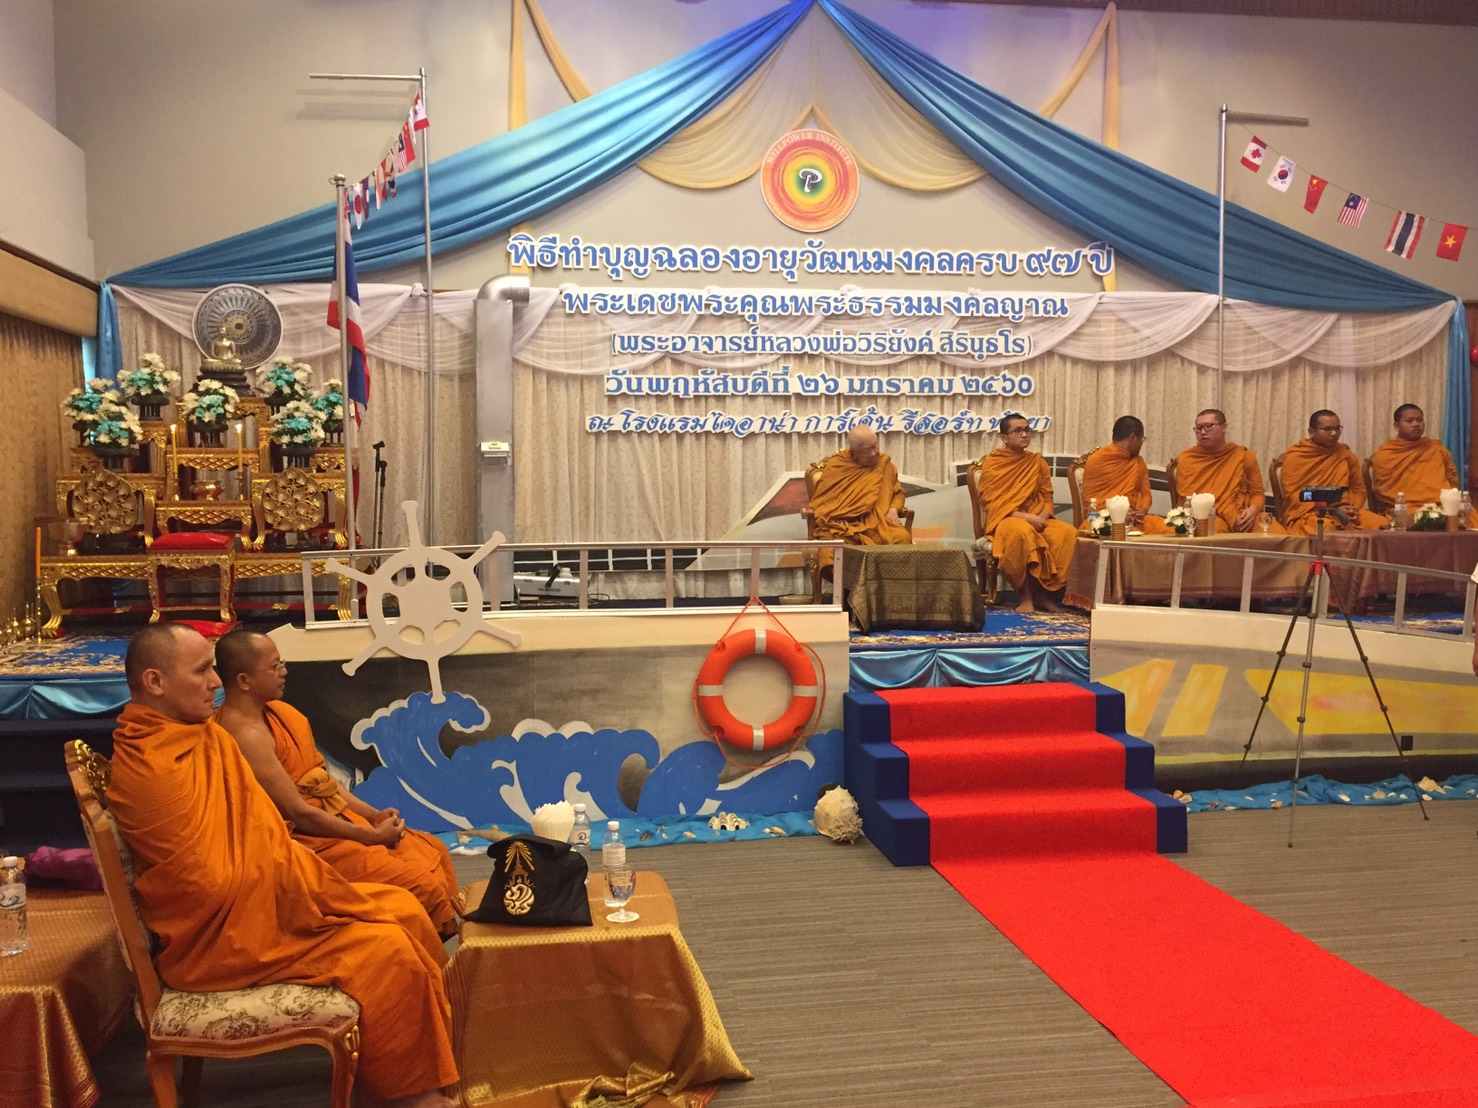 Many people gathered to celebrate the 97th birthday of Luang Poo Wiriyang Rintaro, founder of the Willpower Institute.